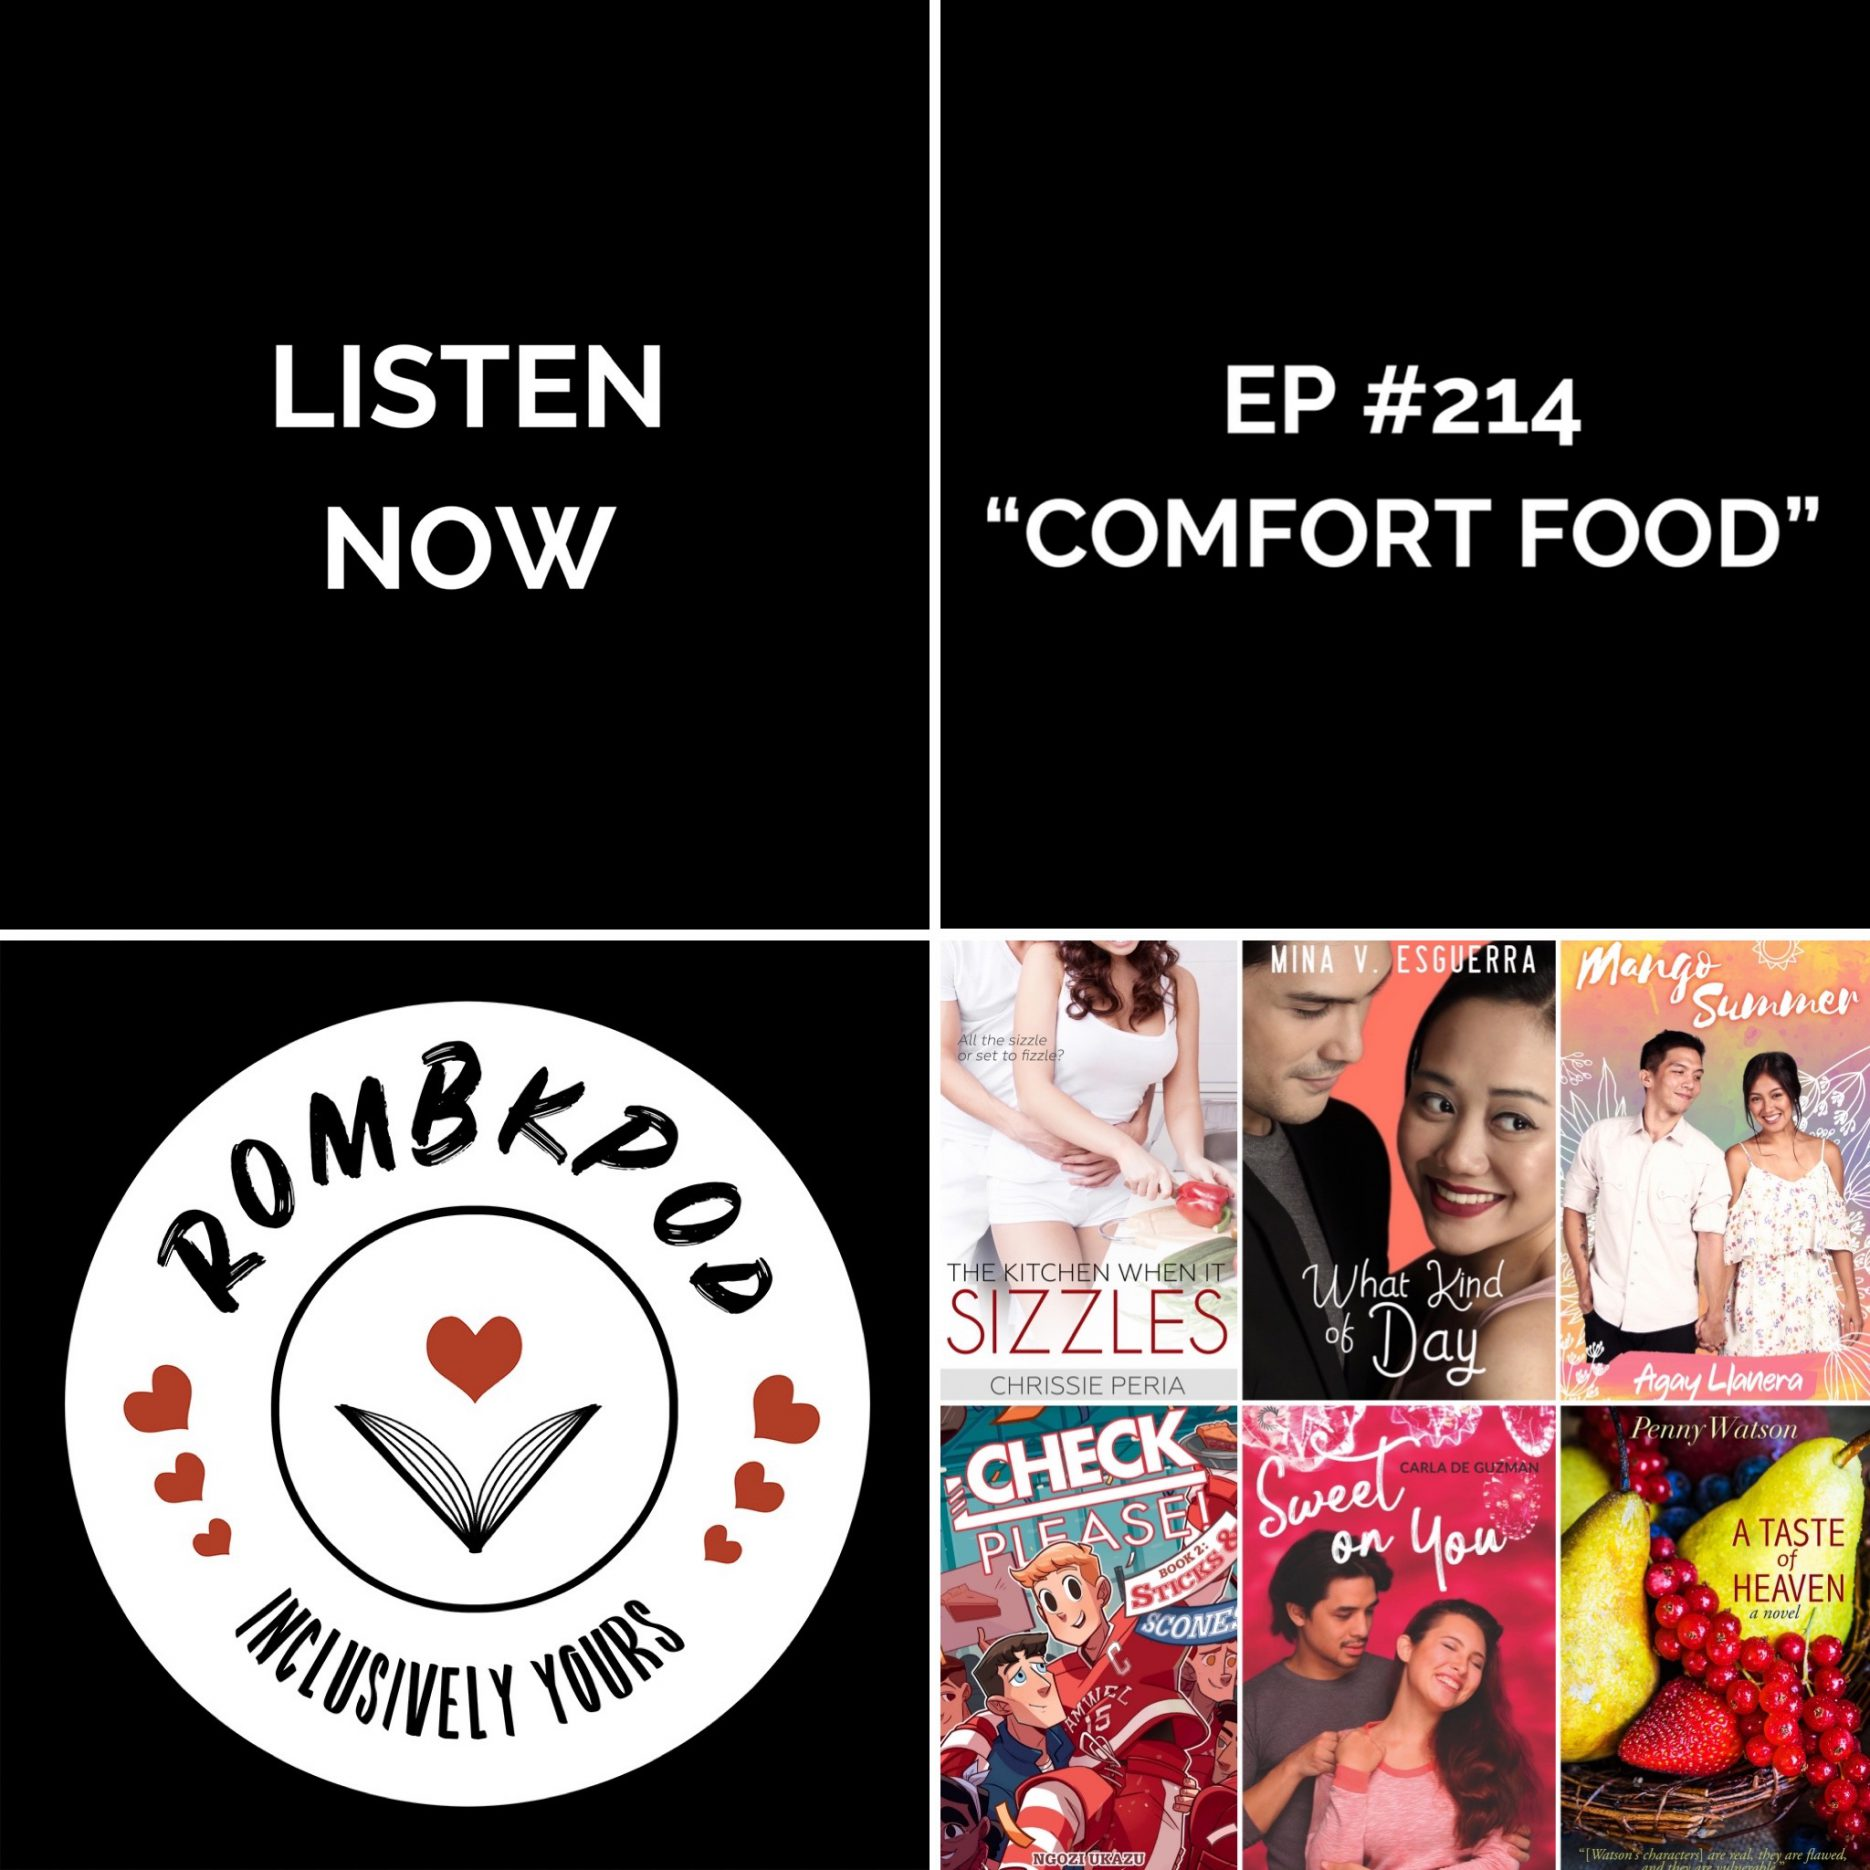 """IMAGE: lower left corner, RomBkPod heart logo; lower right corner, ep #214 book cover collage; IMAGE TEXT: Listen Now, ep #214 """"Comfort Food"""""""